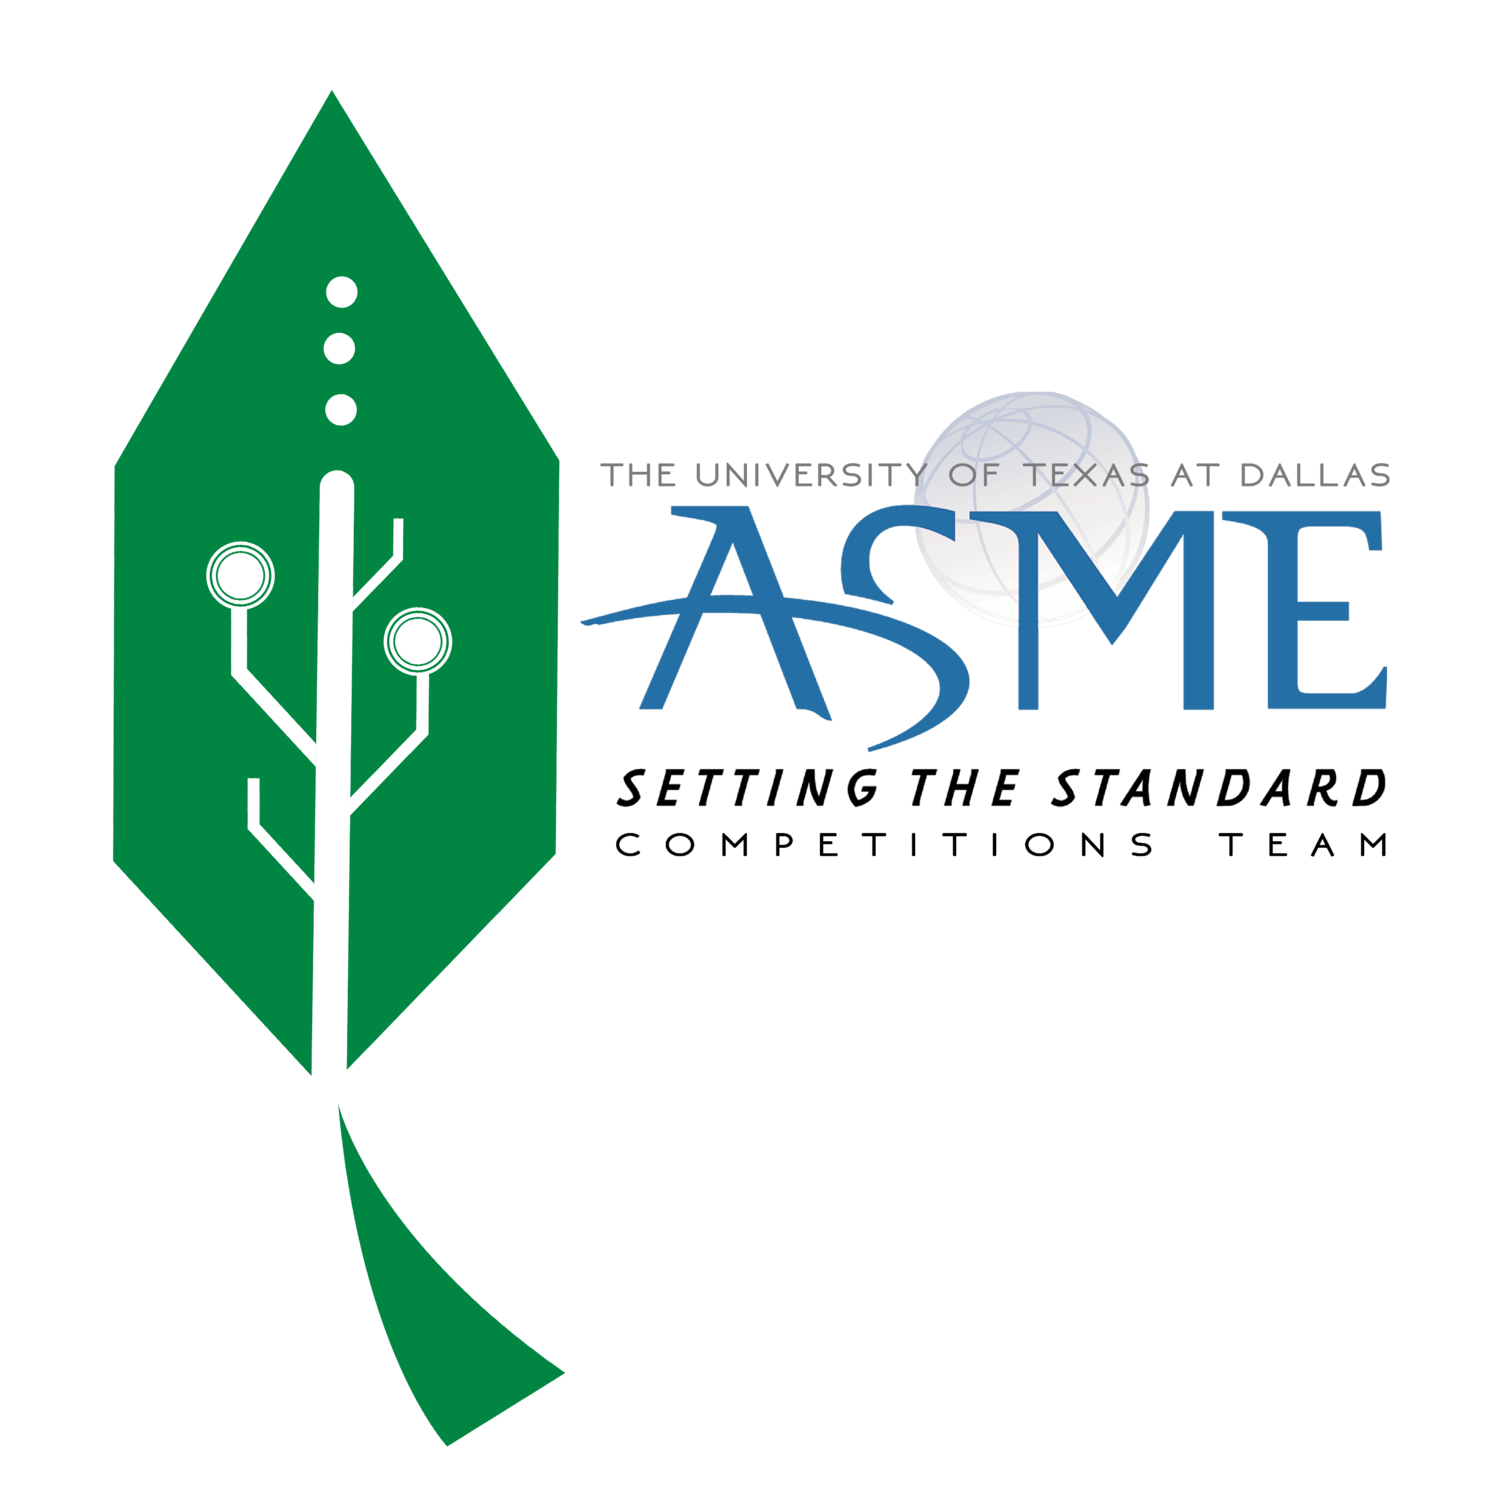 ASME COMPETITIONS